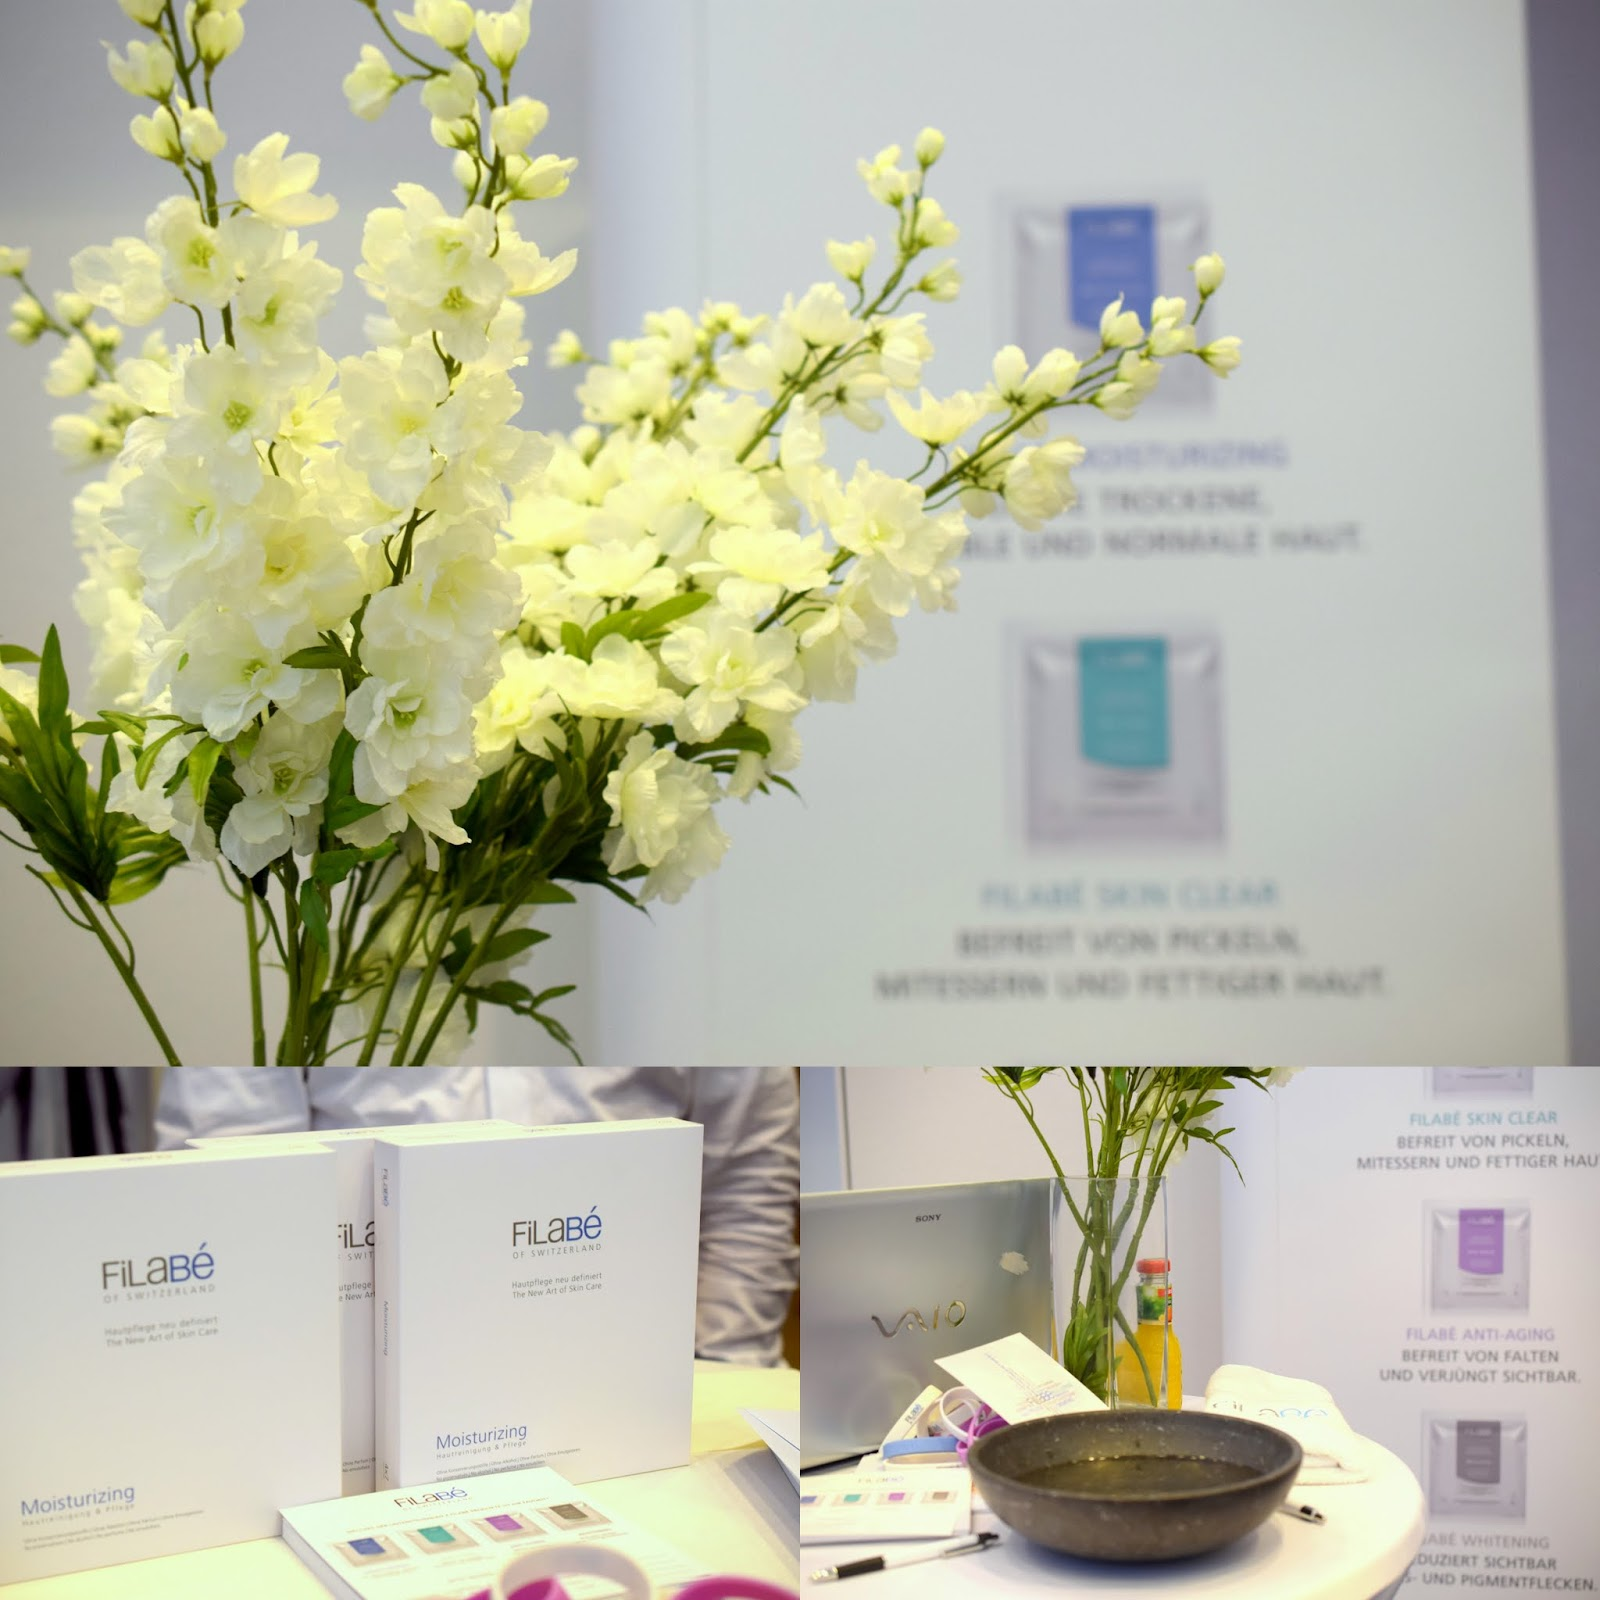 Beautypress Bloggerevent Juni 2015: Filabé